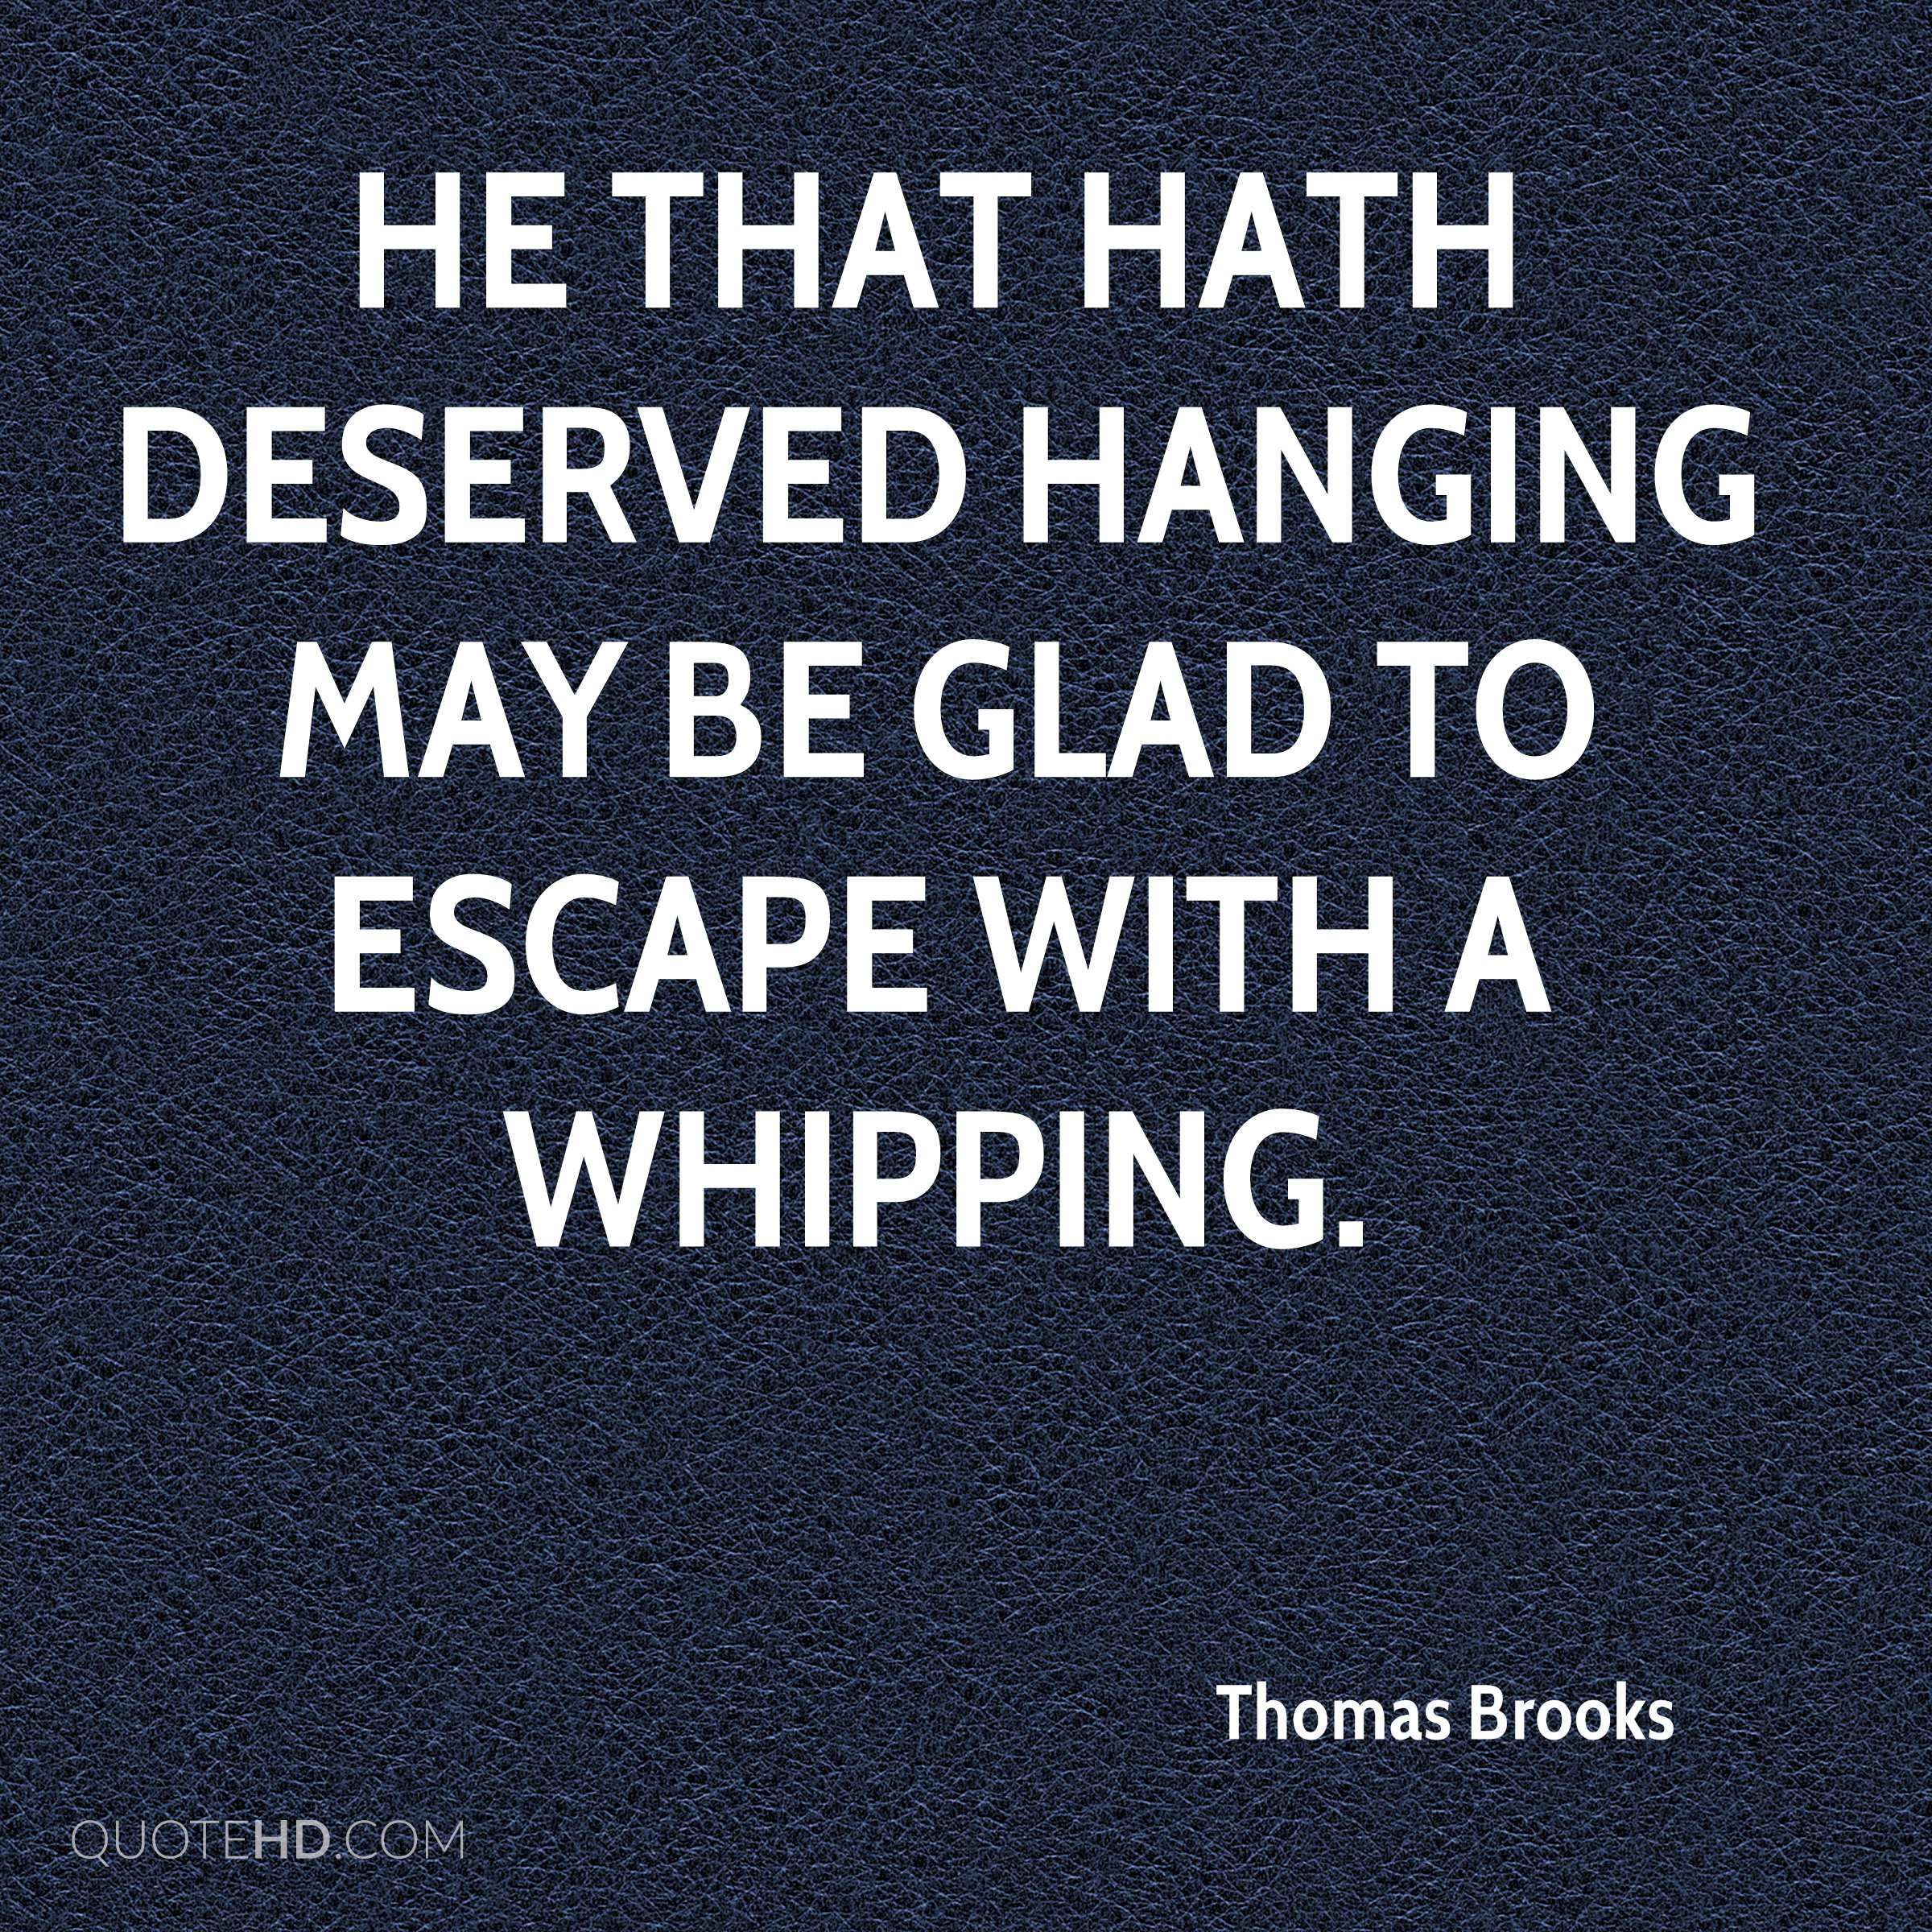 He that hath deserved hanging may be glad to escape with a whipping.